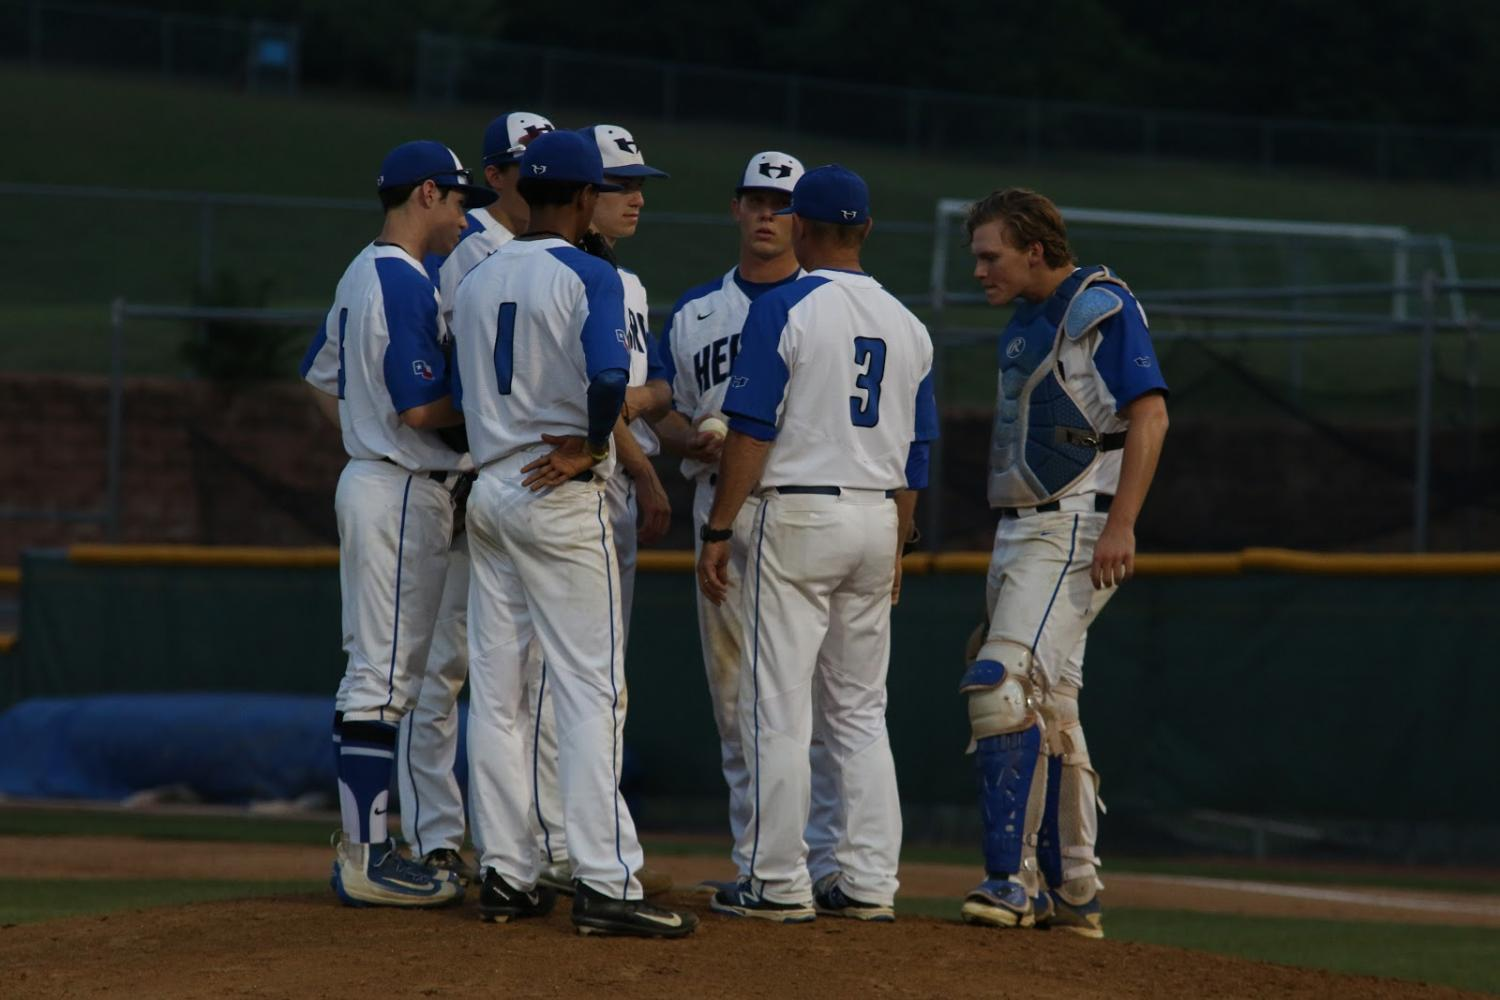 Coach+Stephen+Stone+and+players+huddle+to+talk+about+their+strategy.+Since+both+teams+were+tied+for+five+innings%2C+deliberating+their+options+for+a+winning+outcome+was+crucial.+